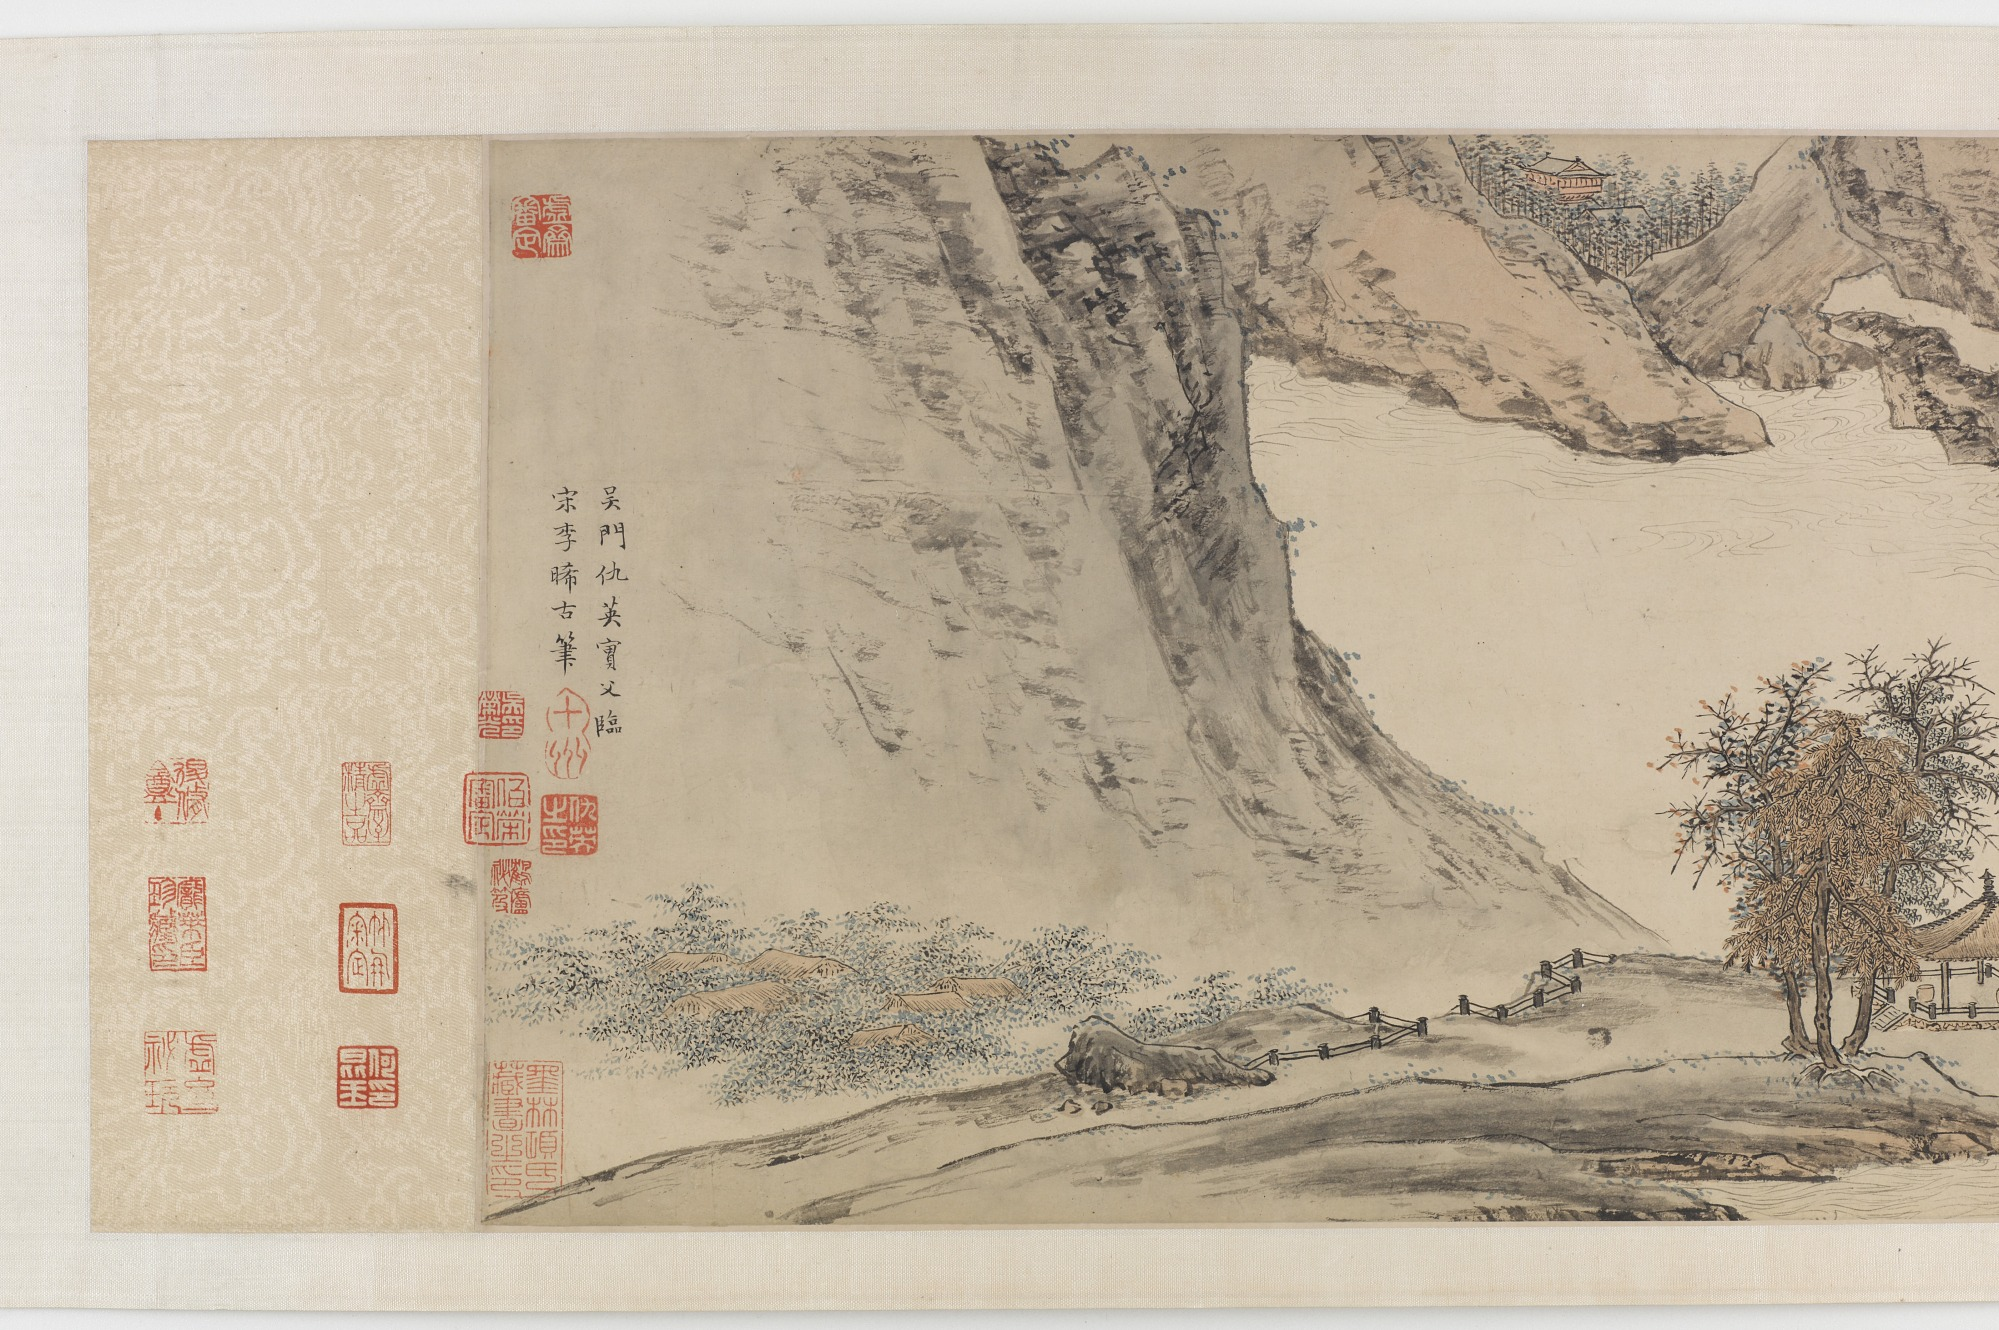 section 12: Landscape in the Style of Li Tang